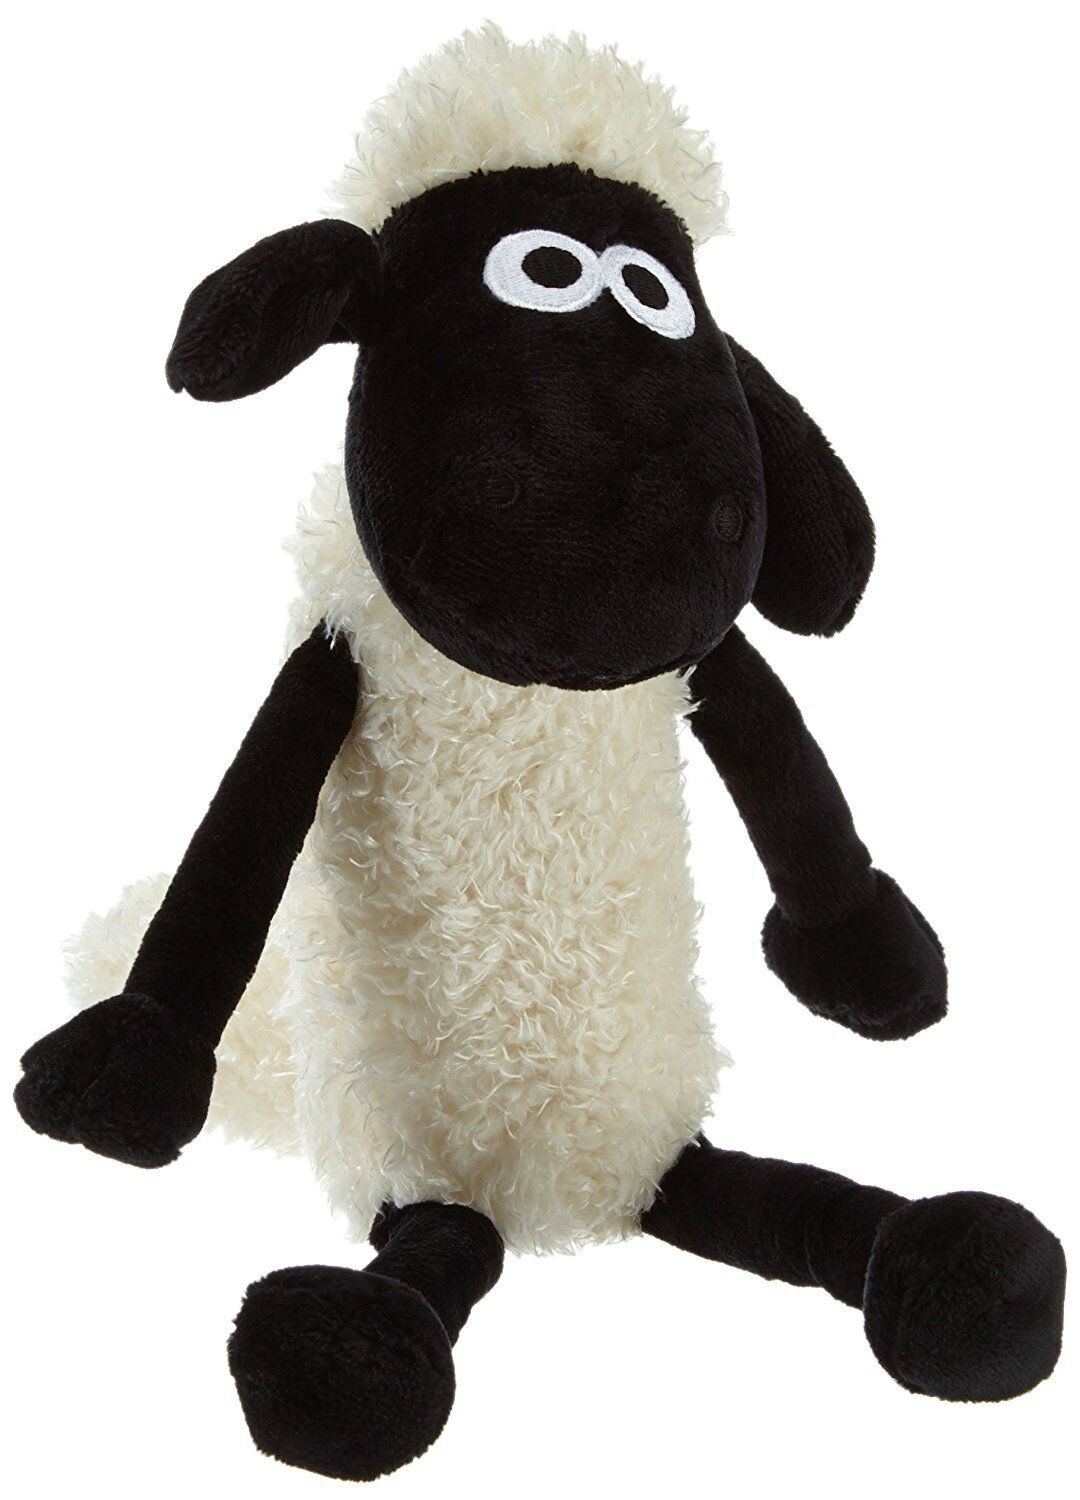 Stuffed toy Shaun the Sheep